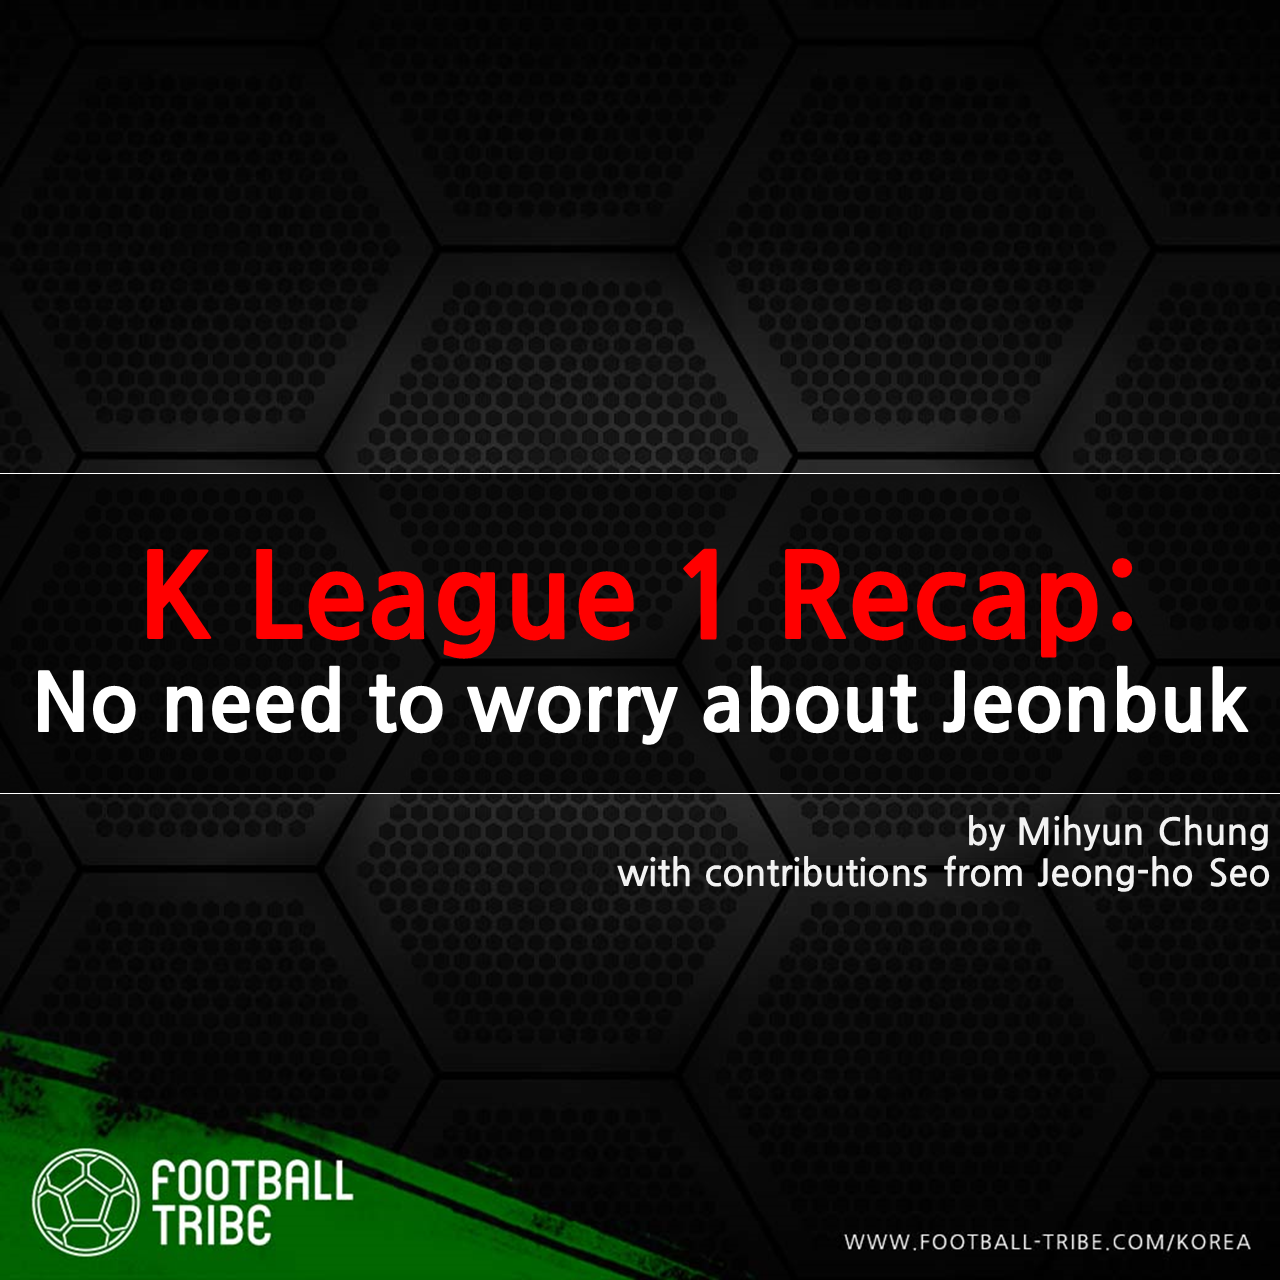 K League 1 Recap: 9th round proves that you don't have to worry about Jeonbuk